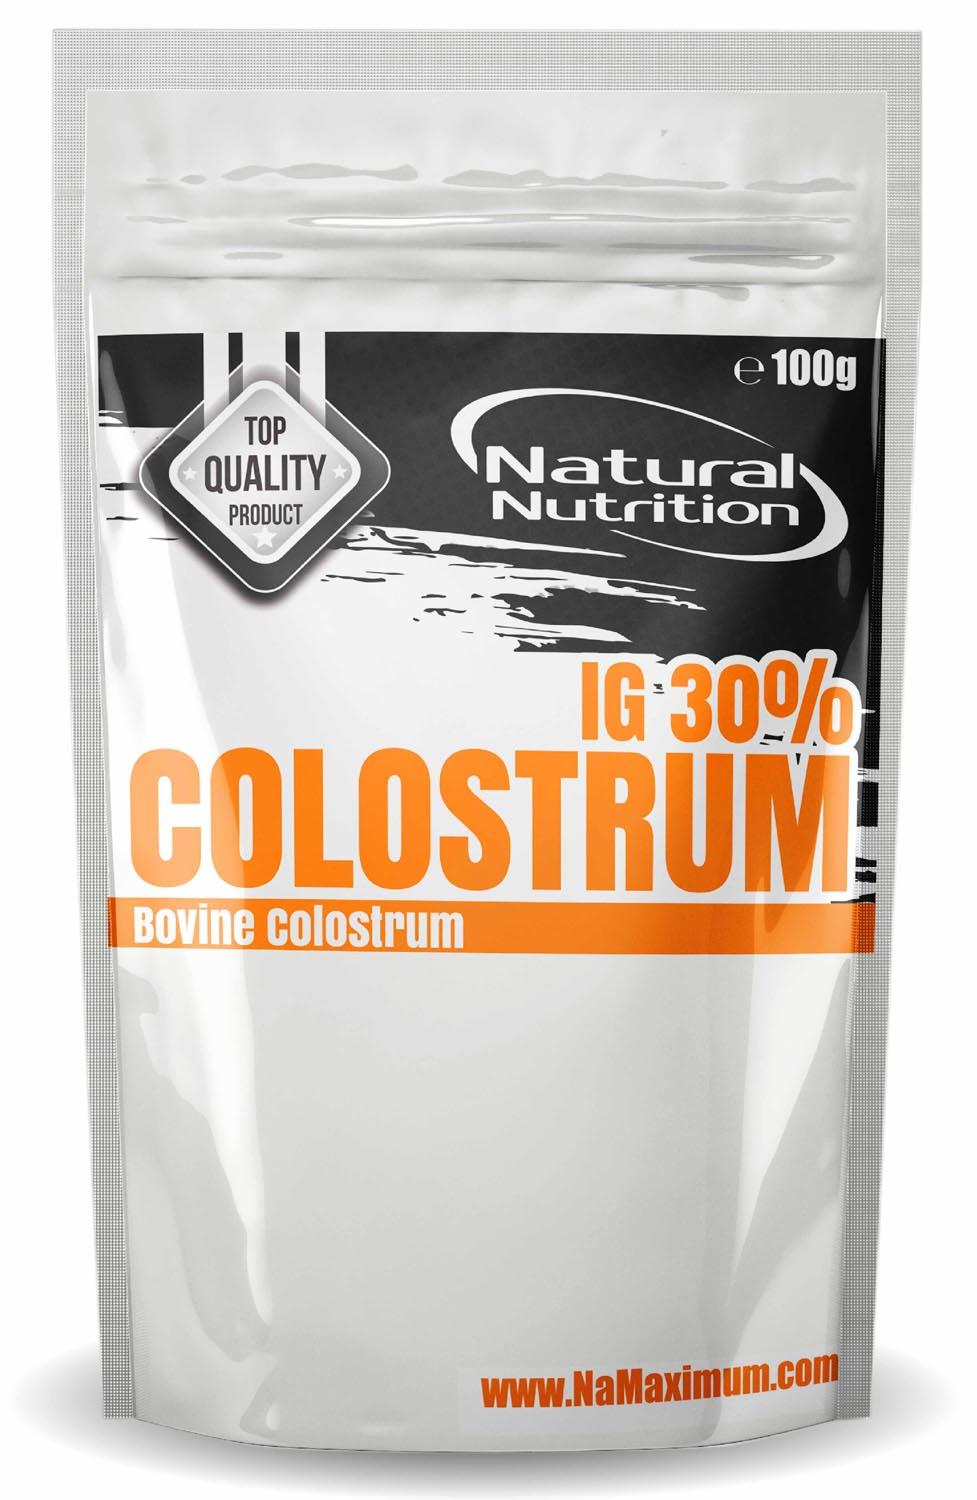 COLOSTRUM – KOLOSTRUM